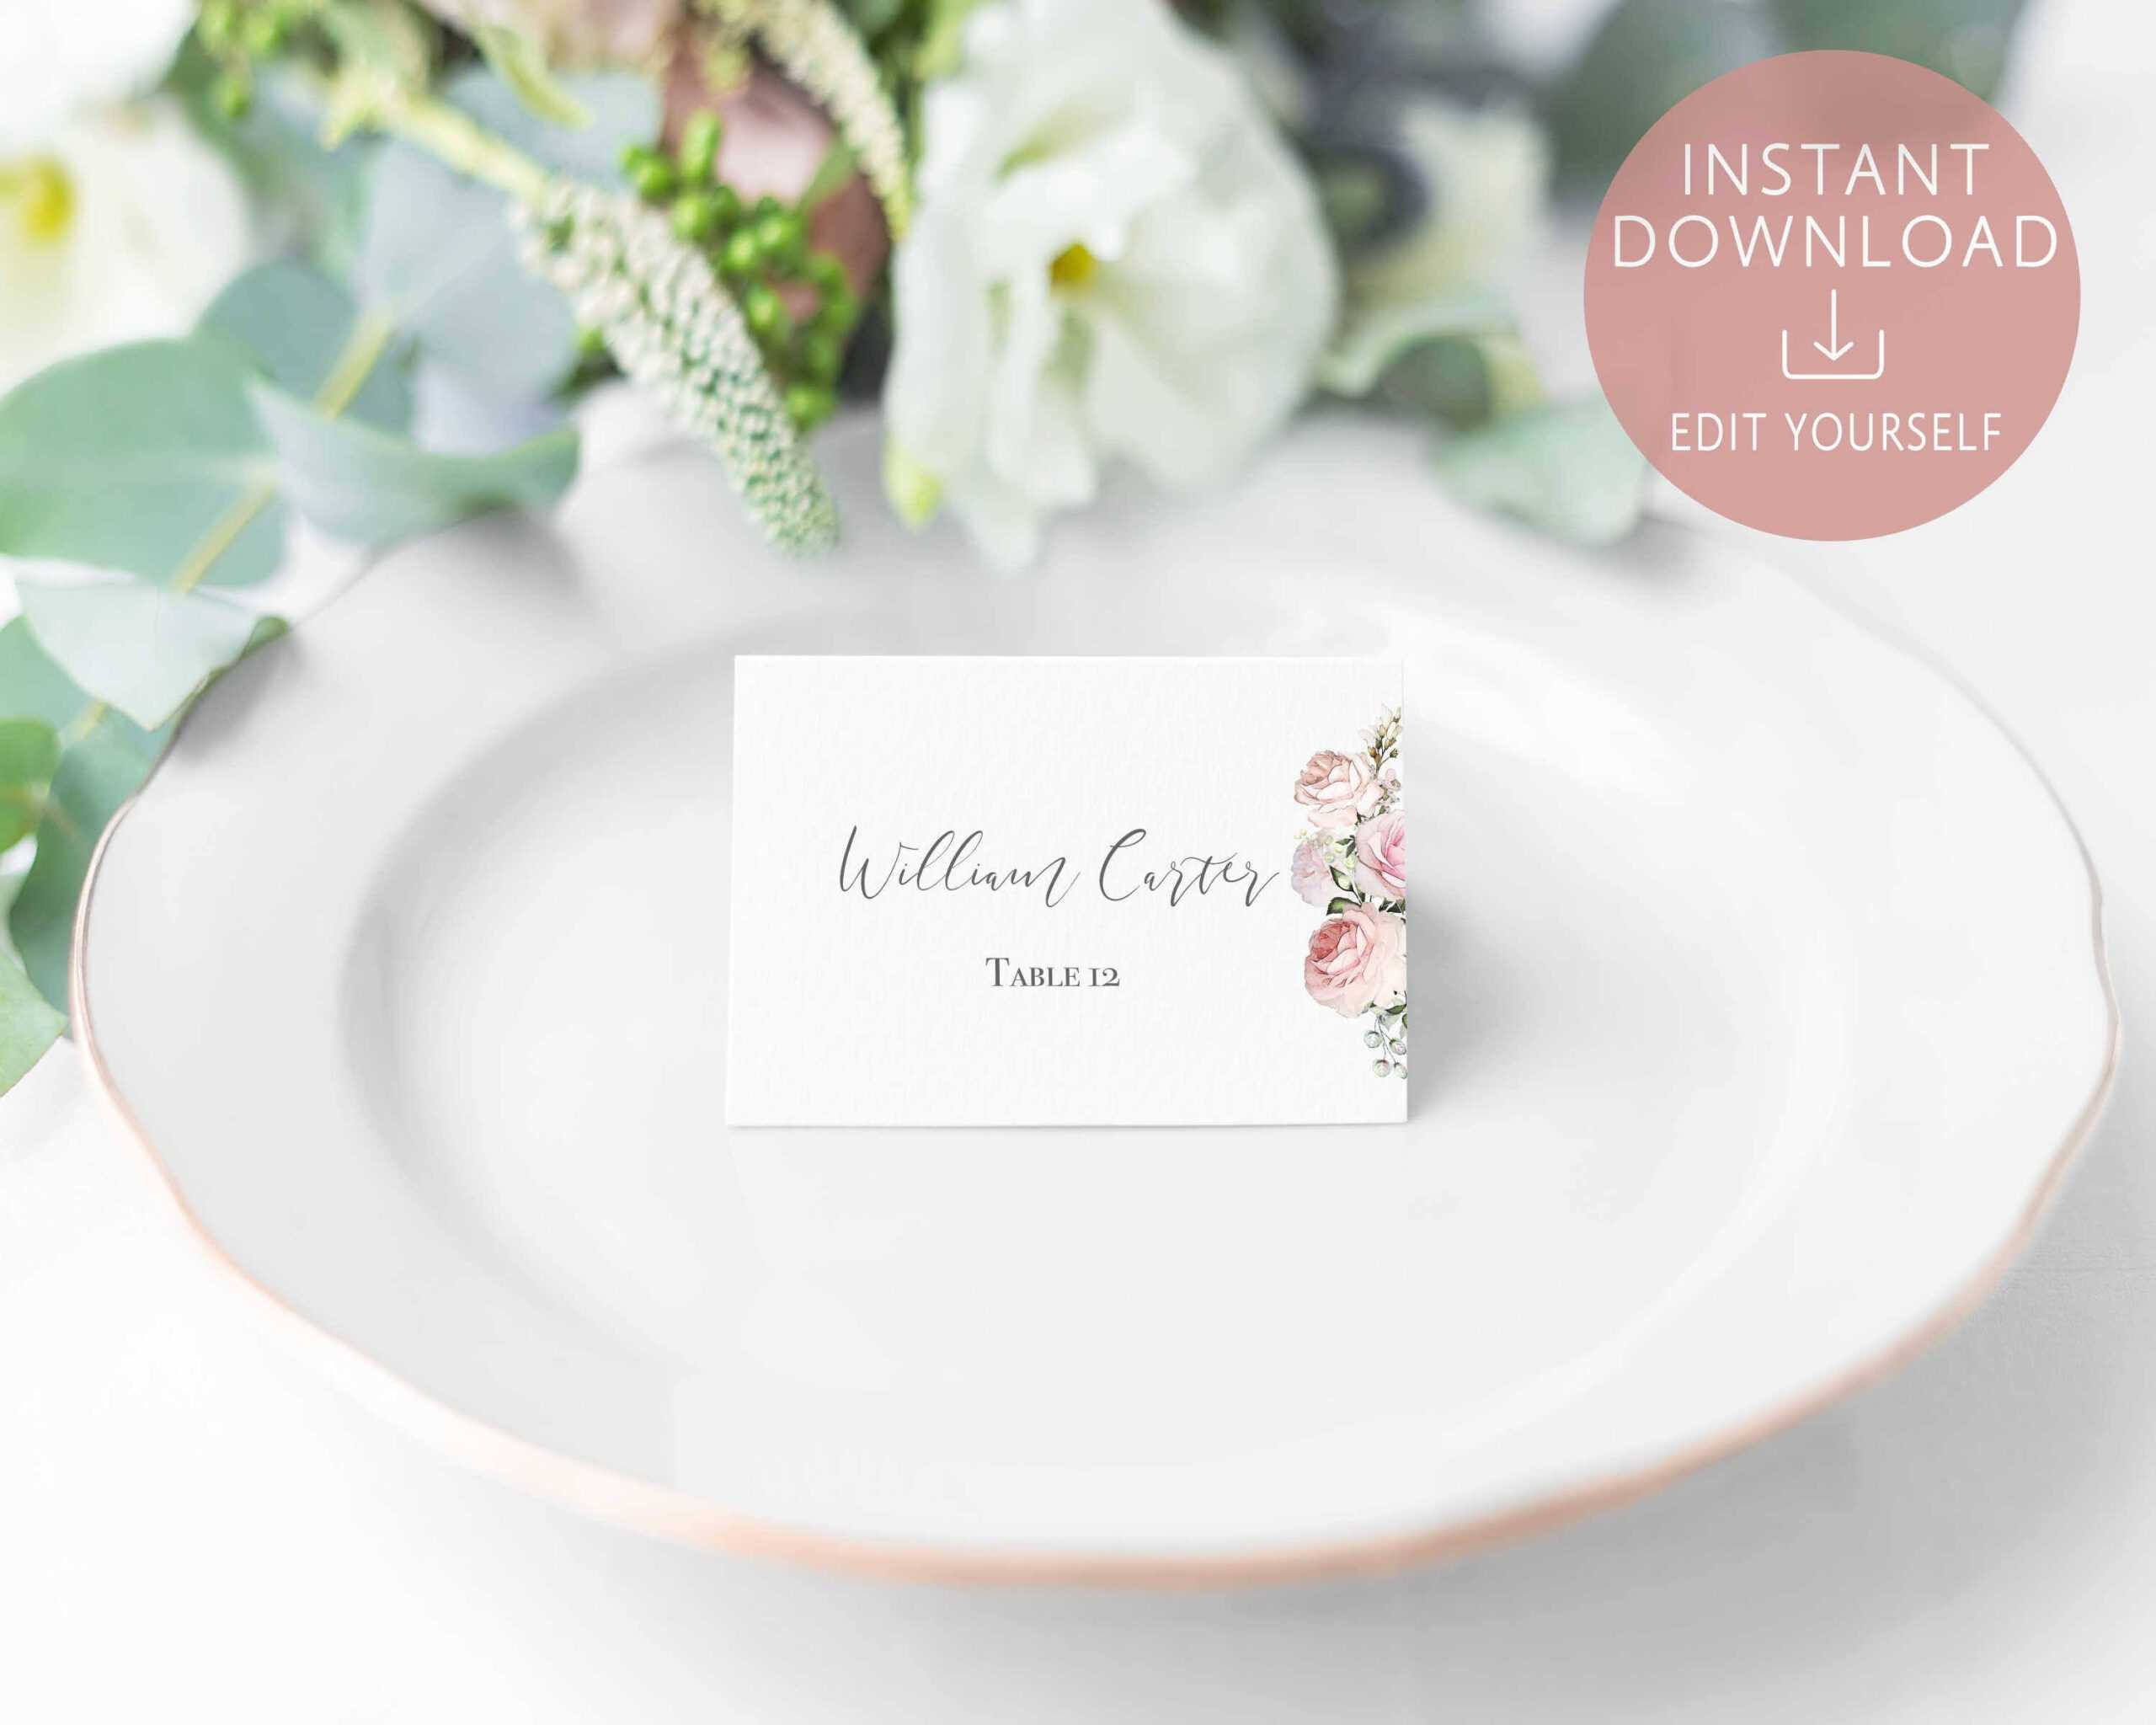 004 Template Ideas Name Place Cards Marvelous Card Free Inside Place Card Setting Template